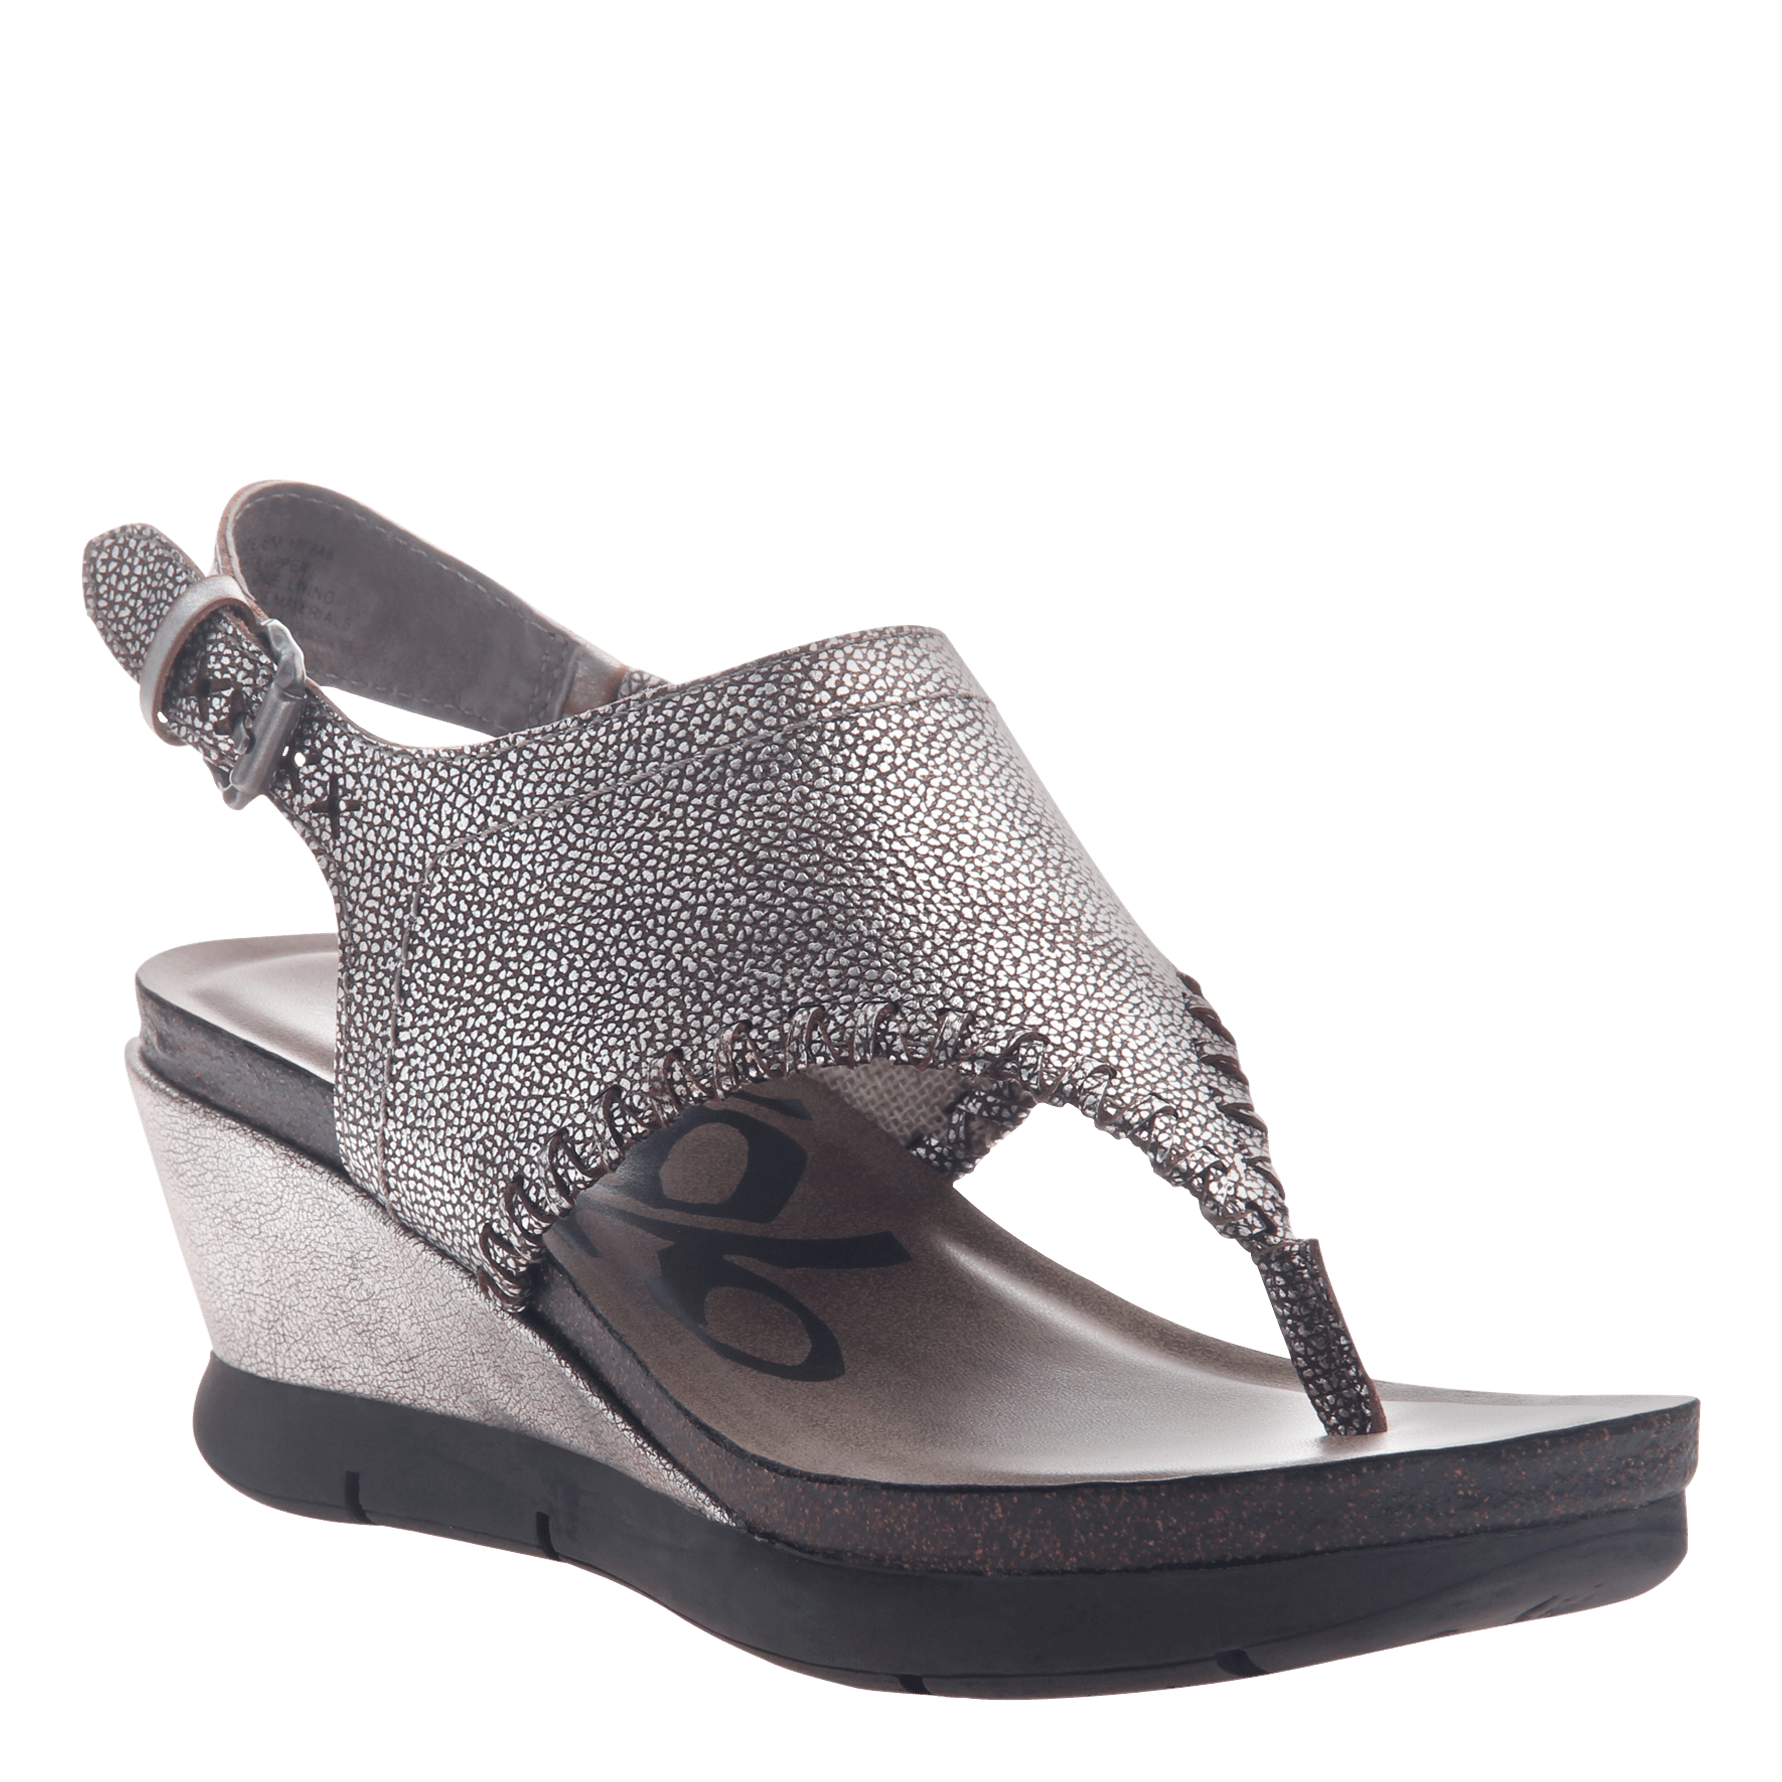 60c07172580dfc Womens thong wedge sandal Meditate in silver